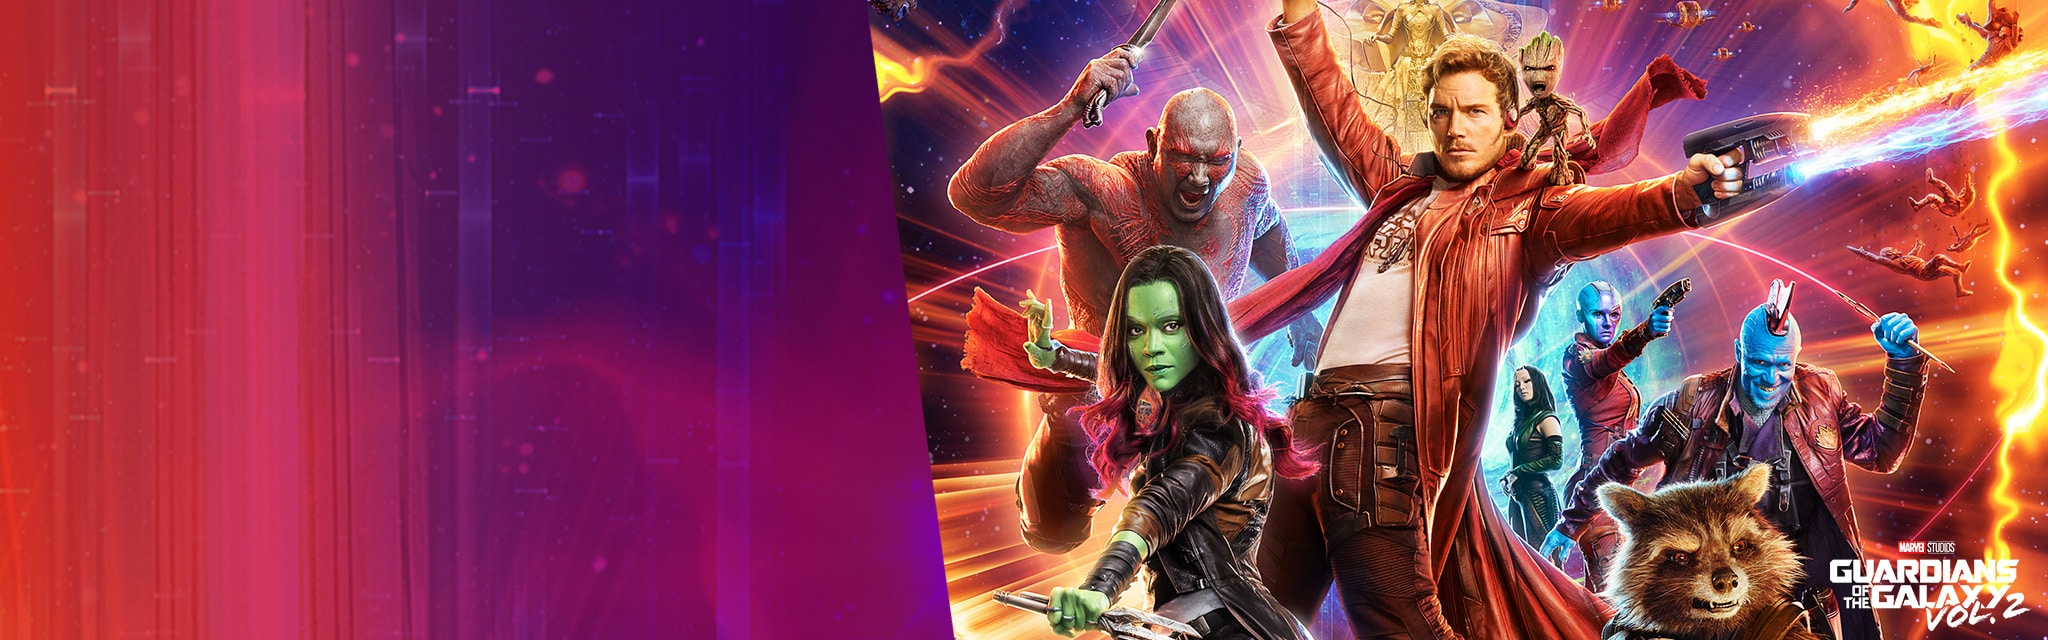 Guardians of the Galaxy Vol 2 - In Theaters - Hero